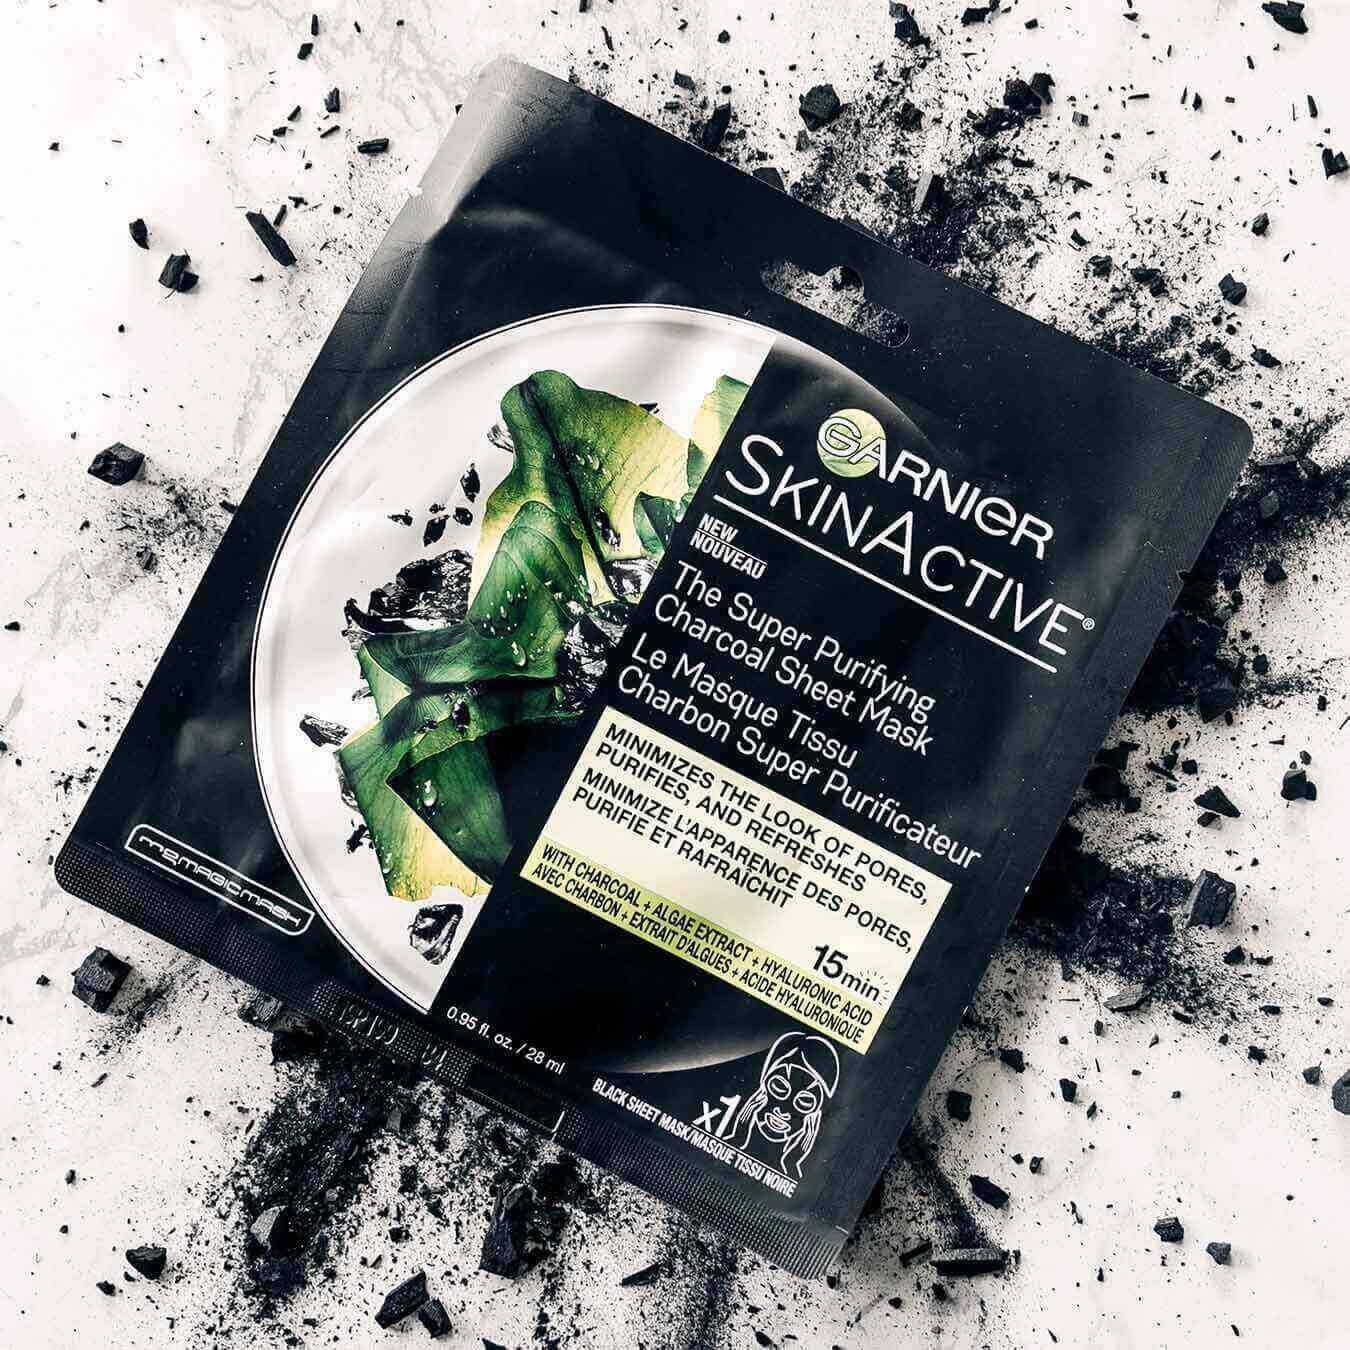 Garnier SkinActive Super Purifying Charcoal Sheet Mask on an explosion of charcoal chunks and powder on pinkish white marble.